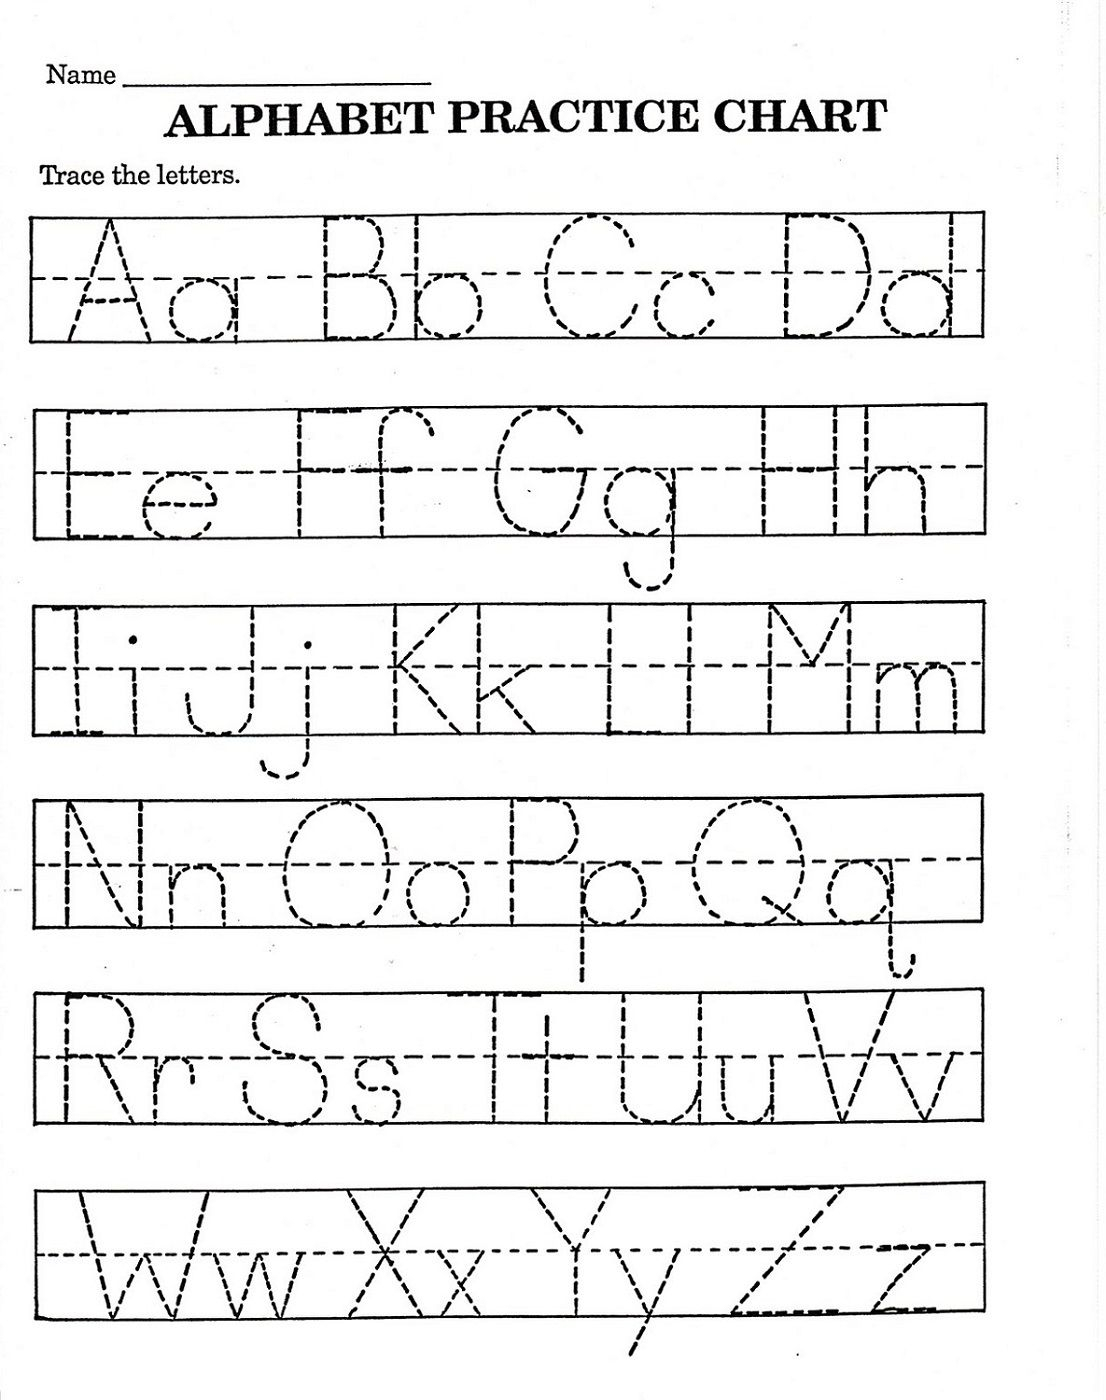 Trace Letter Worksheets Free | Alphabet Tracing Worksheets within A-Z Tracing Letters Worksheets